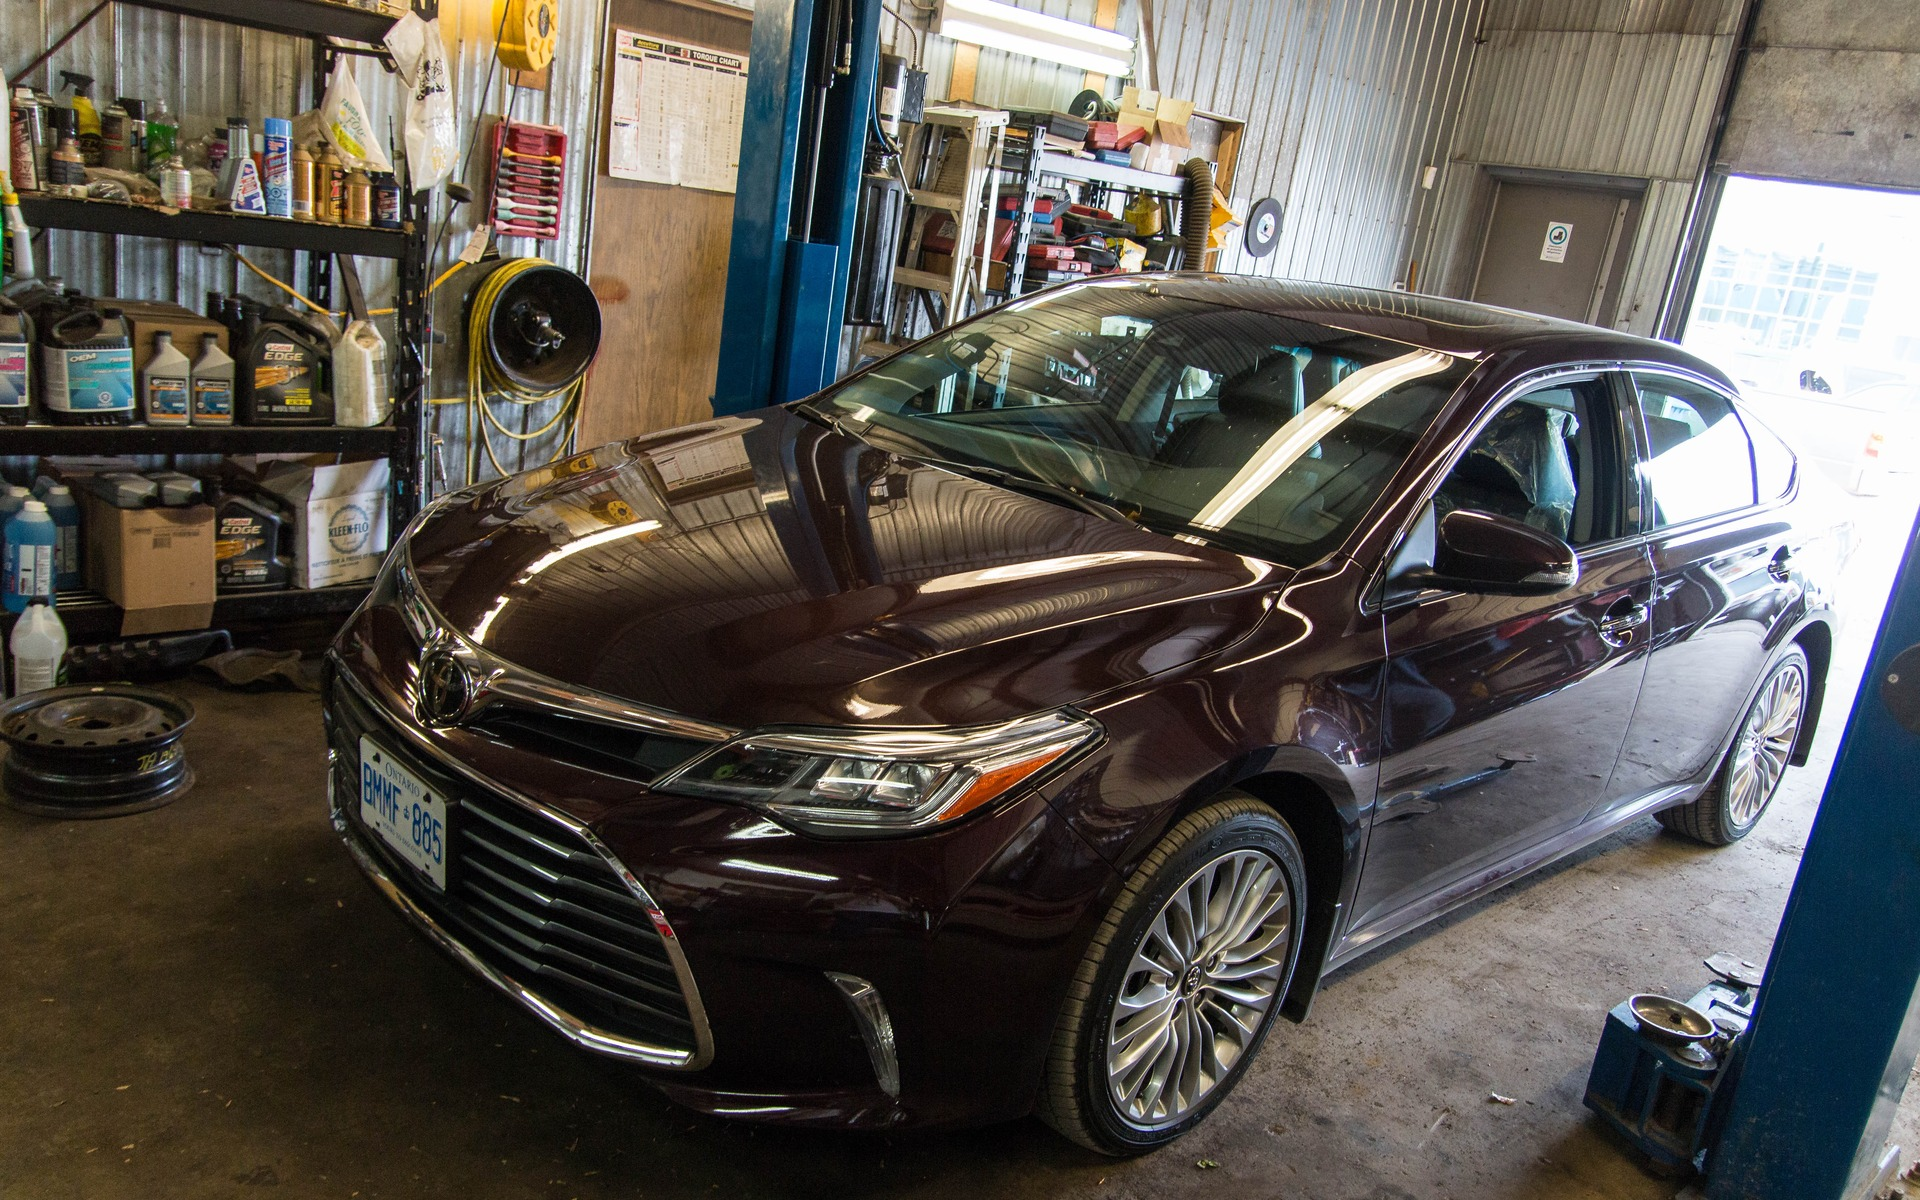 The 2016 Toyota Avalon, ready for inspection.